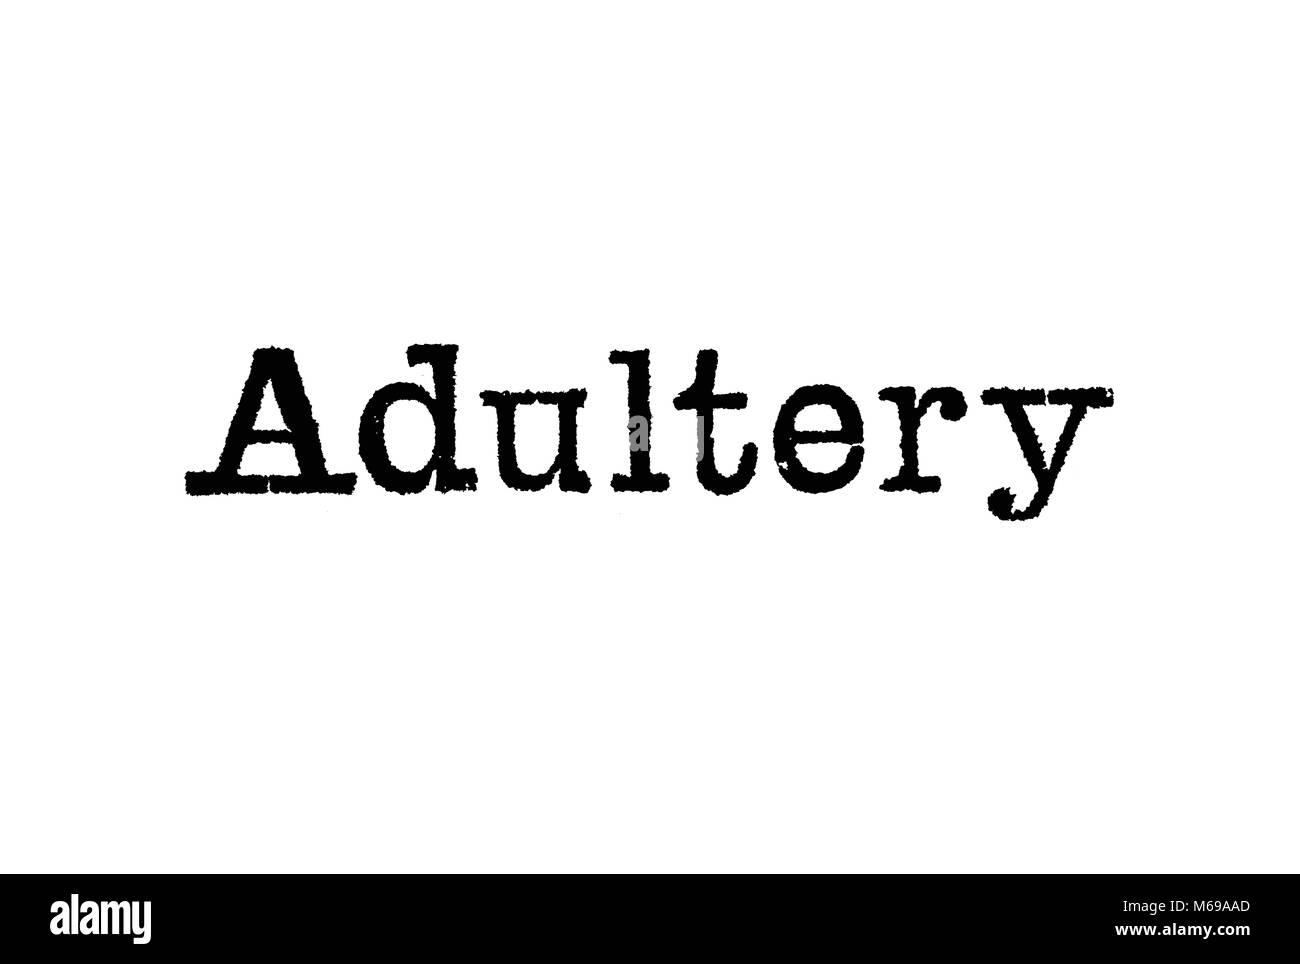 The word Adultery from a typewriter on a white background - Stock Image